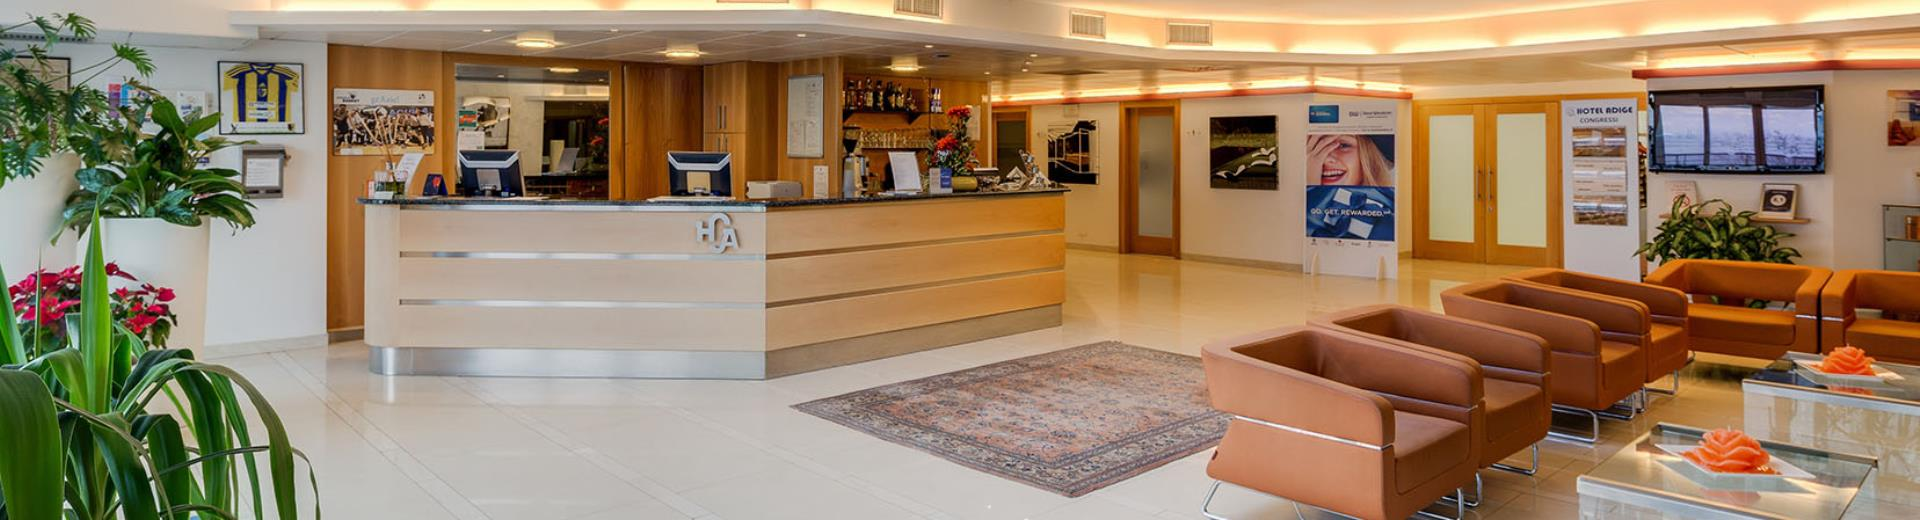 4 star service and comfort at the Best Western Hotel Adige, 4 star hotel near Trento: free Wi-Fi, restaurant, Spa, conventions and much more.